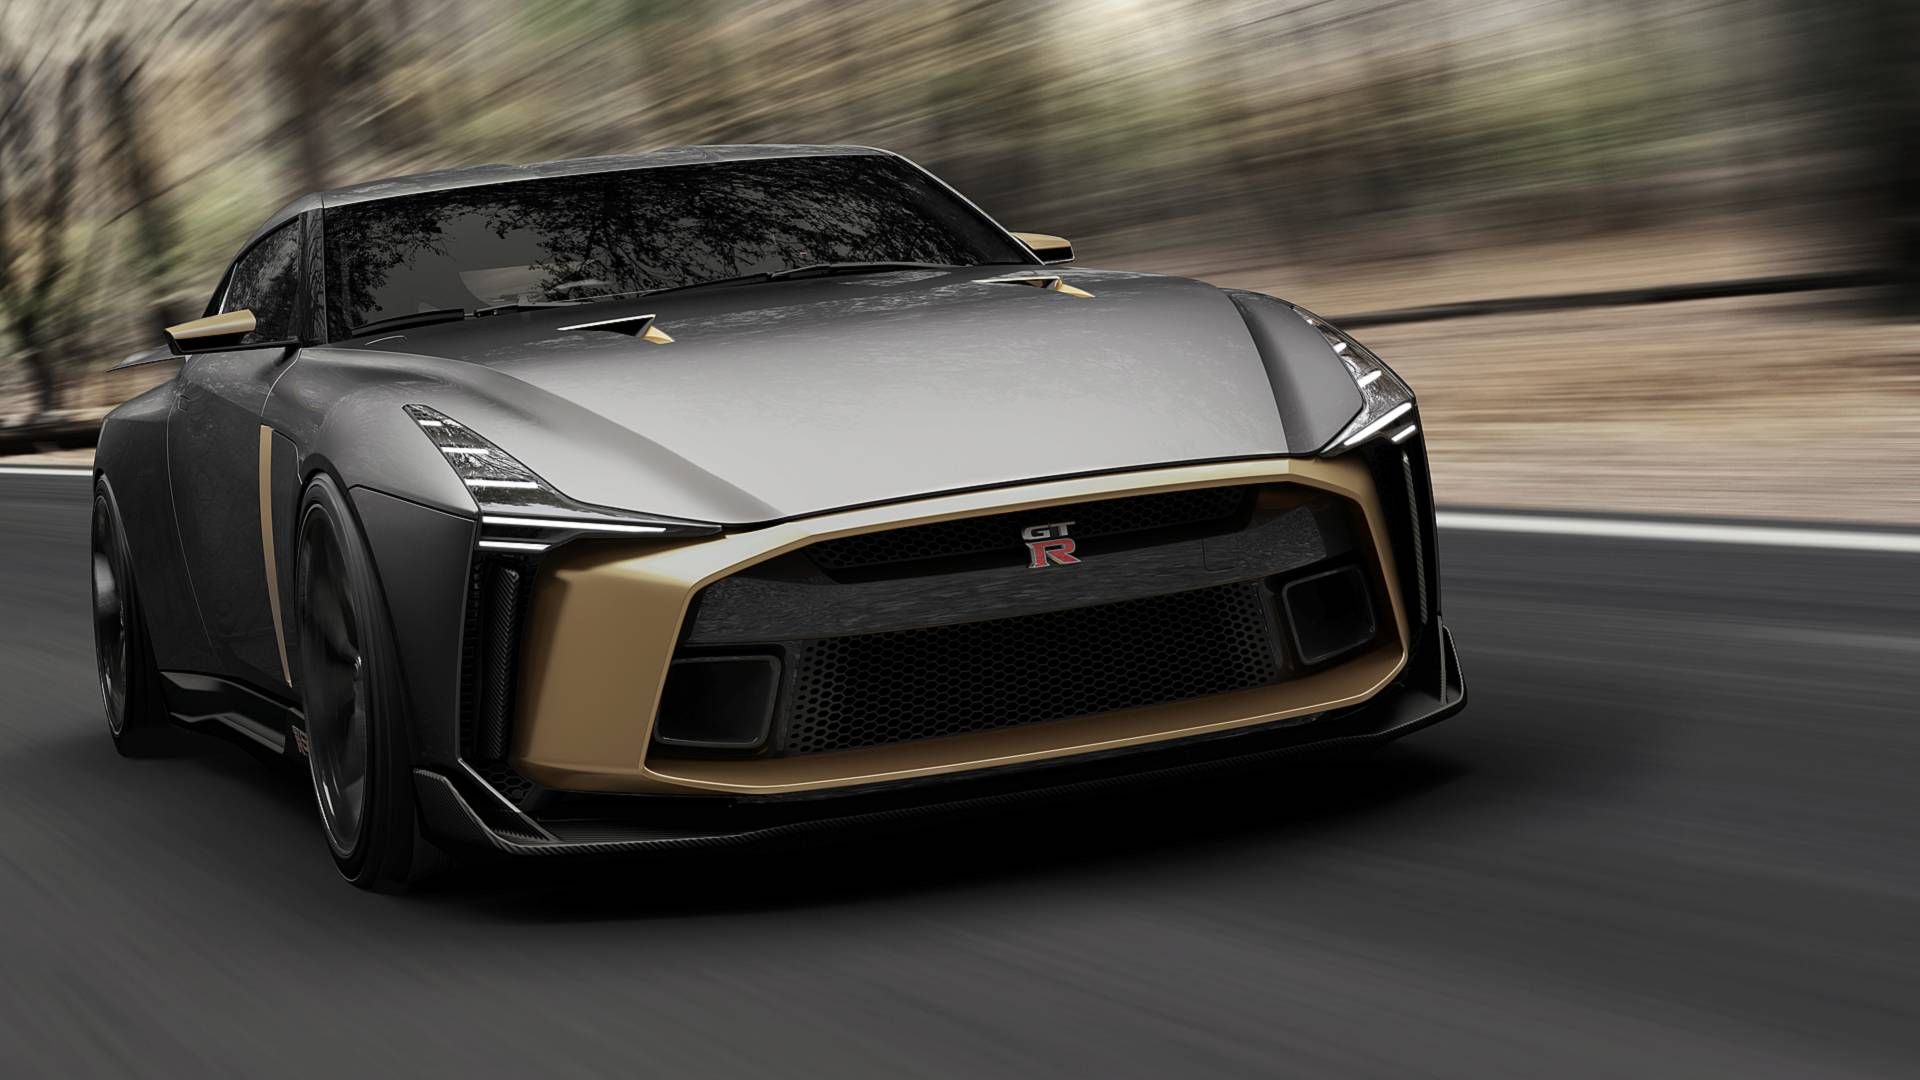 """Next-gen Nissan GT-R to be """"fastest car in the world"""""""